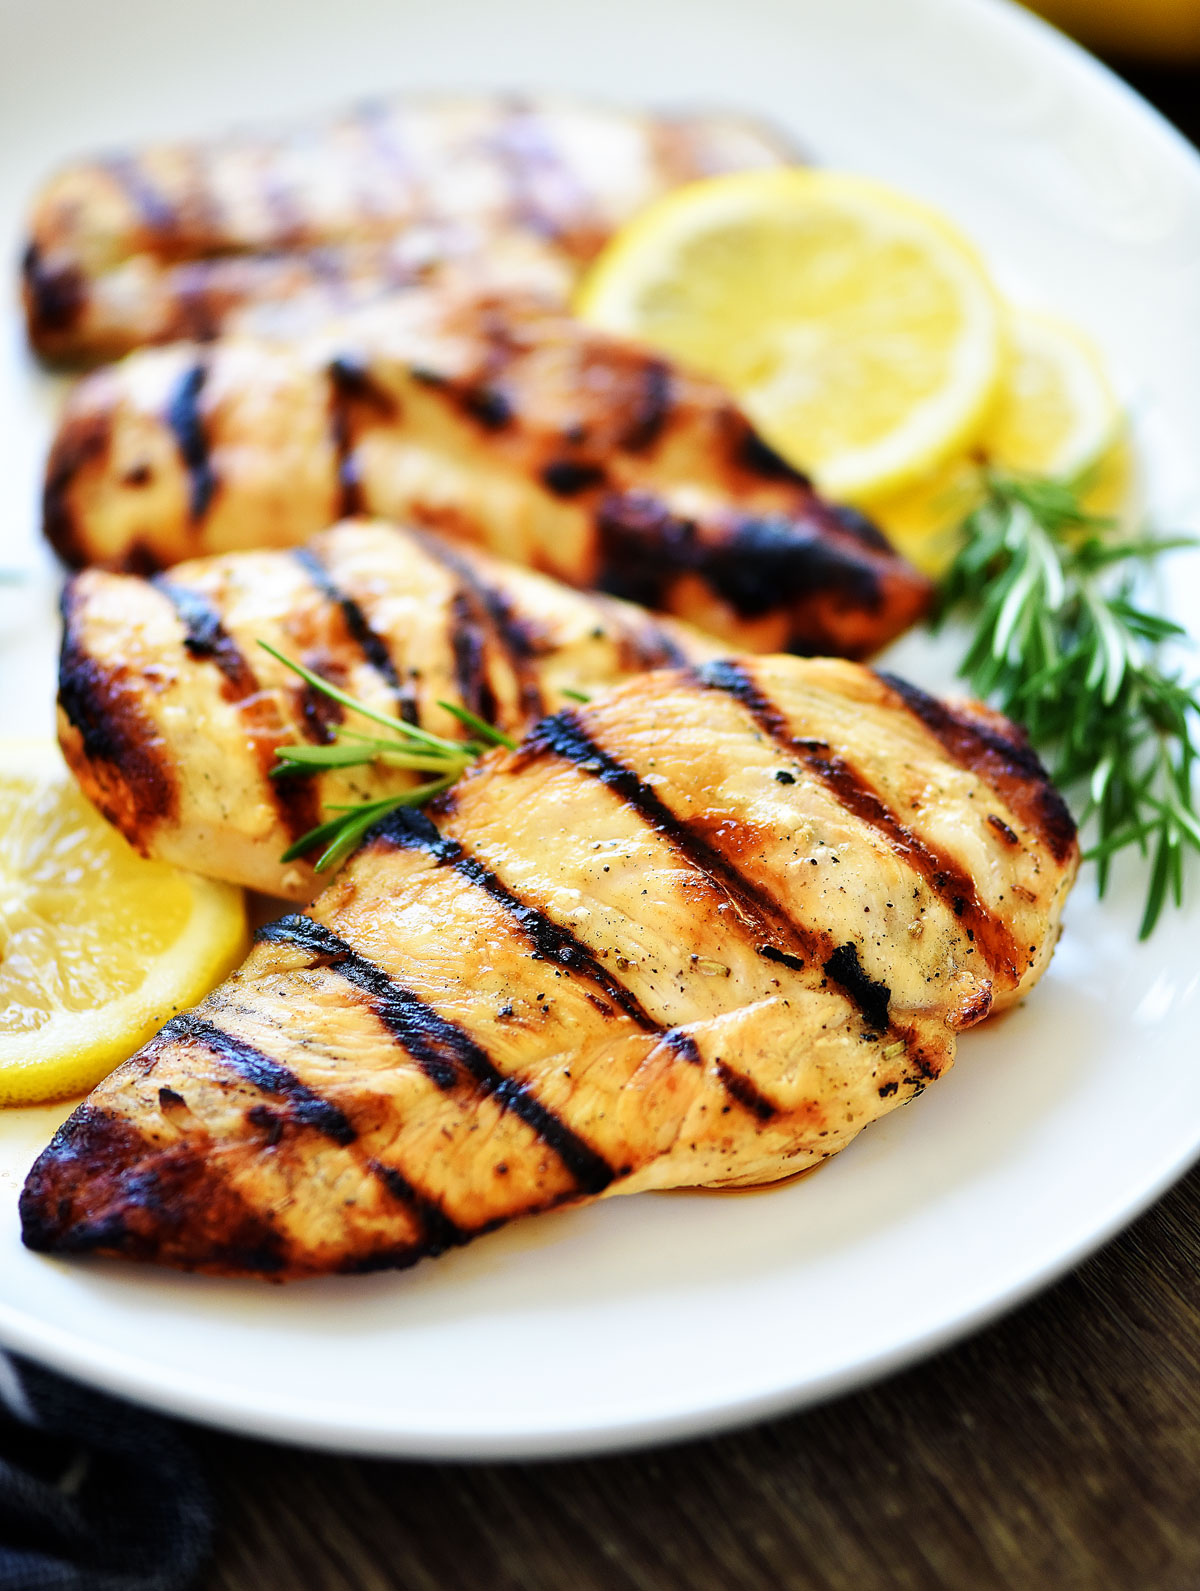 Grilled Lemon Chicken is tender pieces of chicken breast with lemon flavor. Life-in-the-Lofthouse.com